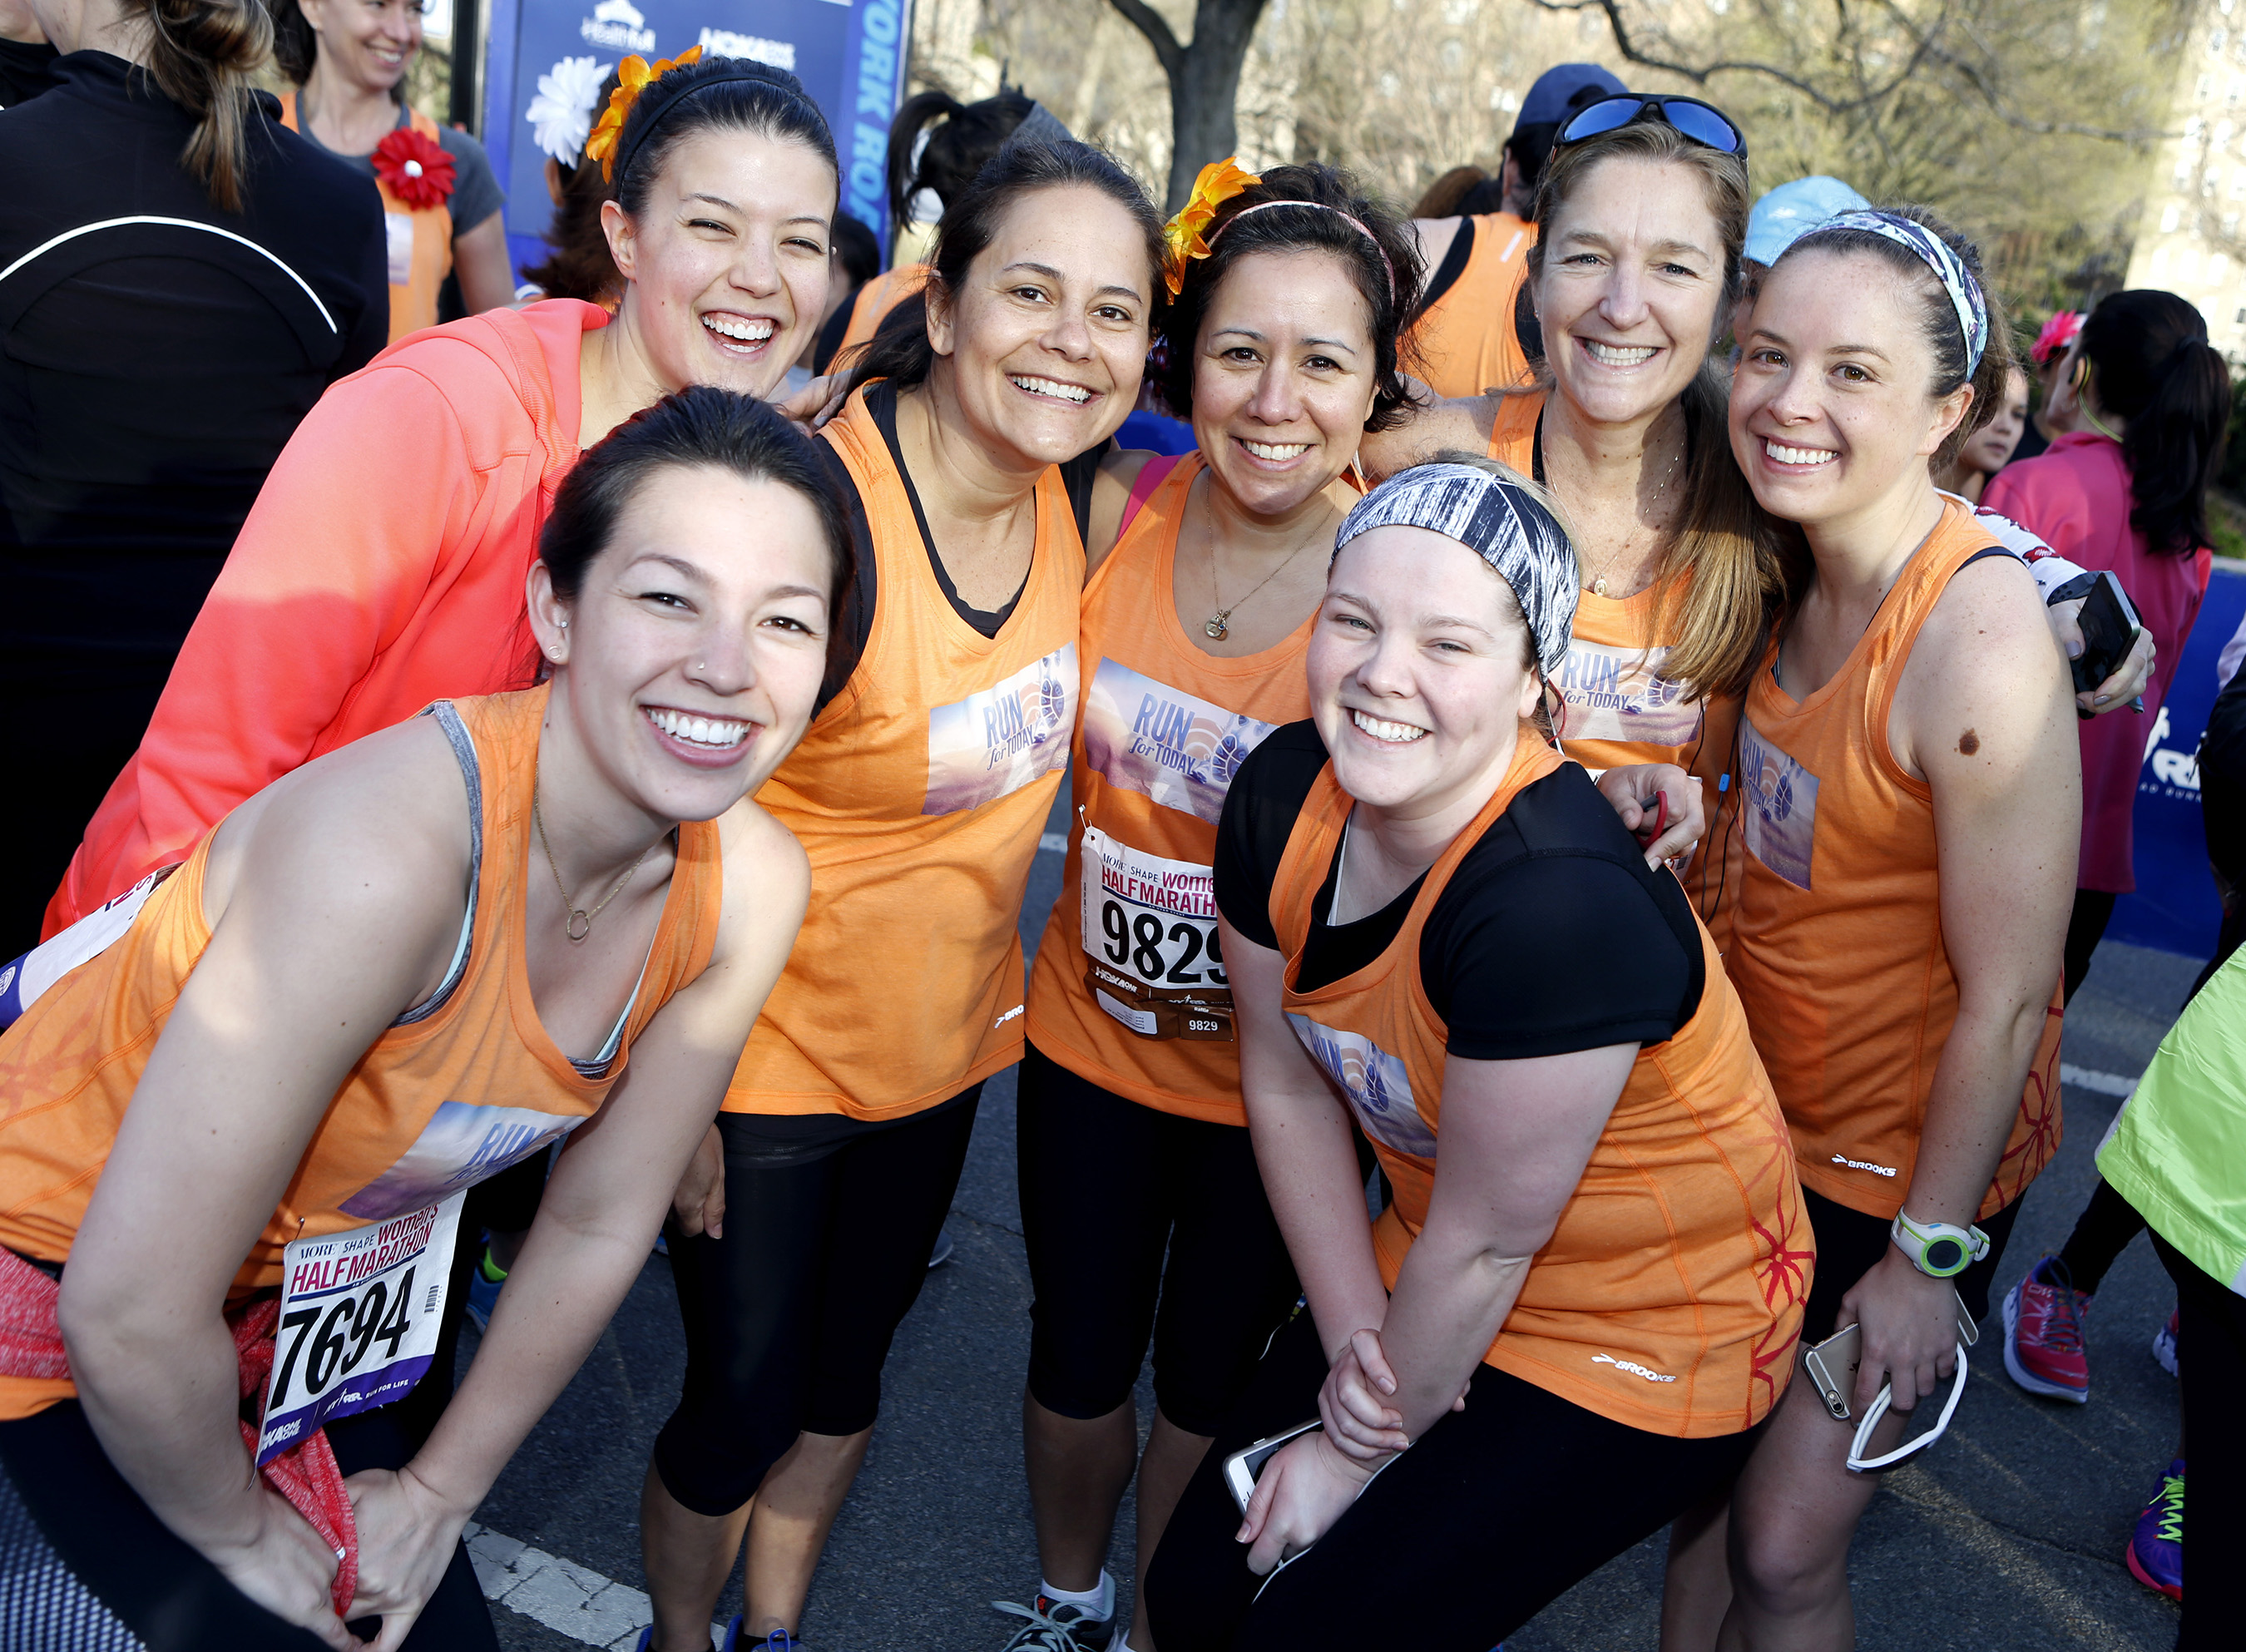 """Run for TODAY"" team members get ready to run the 12th Annual MORE/SHAPE Women's Half-Marathon in New York's Central Park on April 19, 2015."